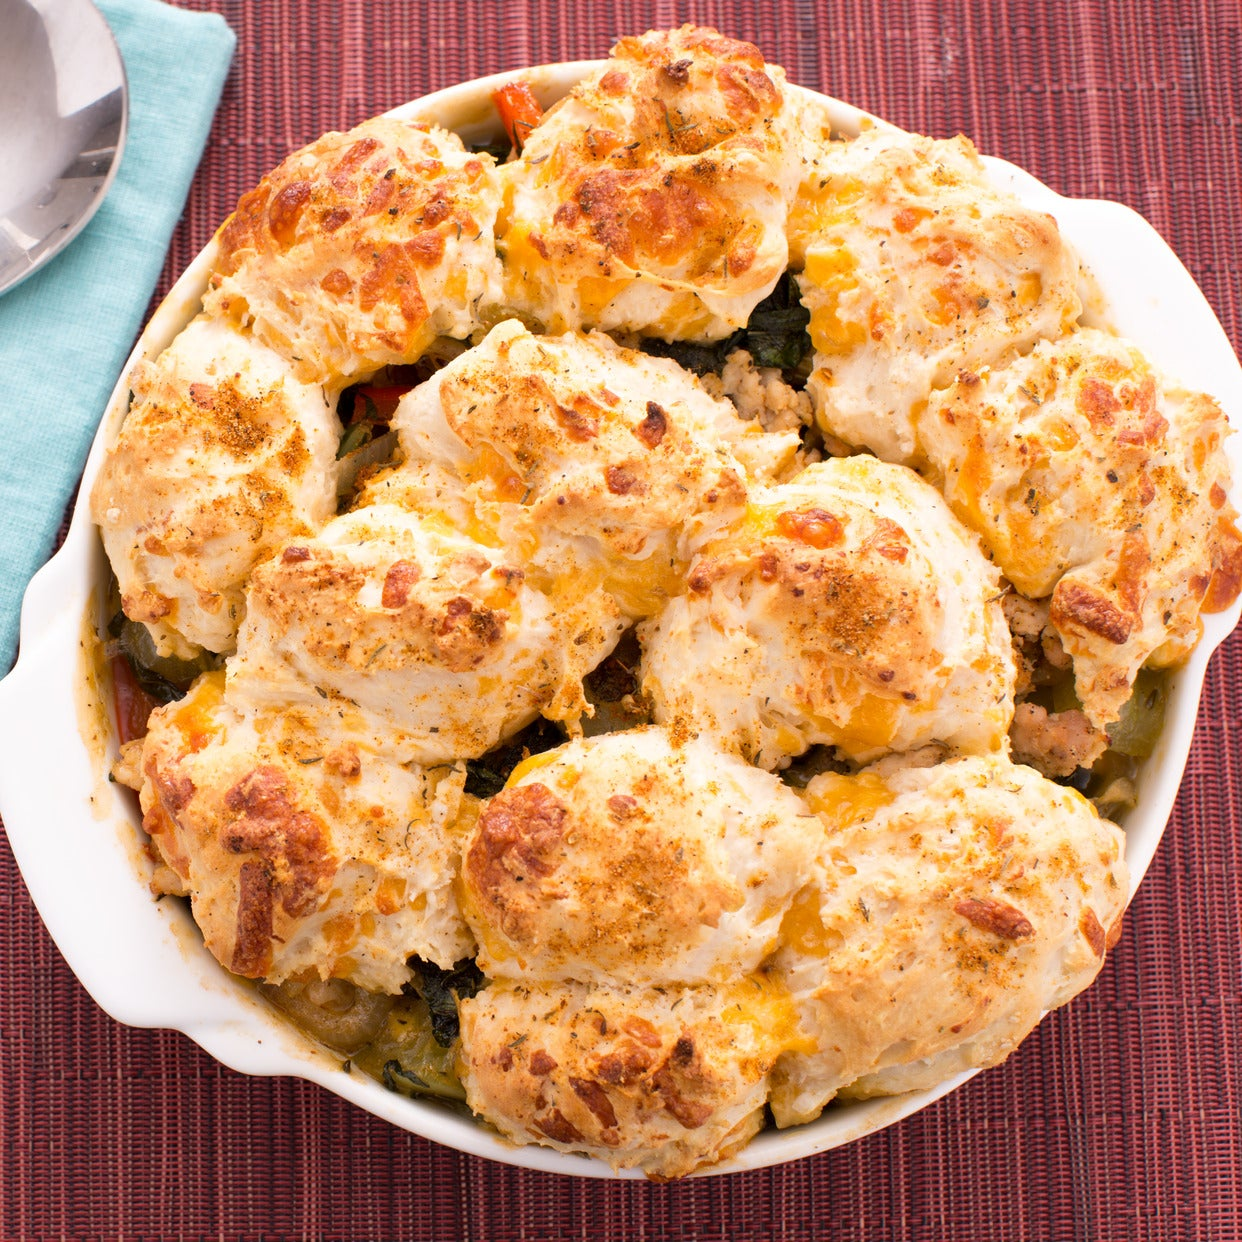 Cheddar Biscuit-Topped Chicken Casserole with Green Tomato & Collard Greens